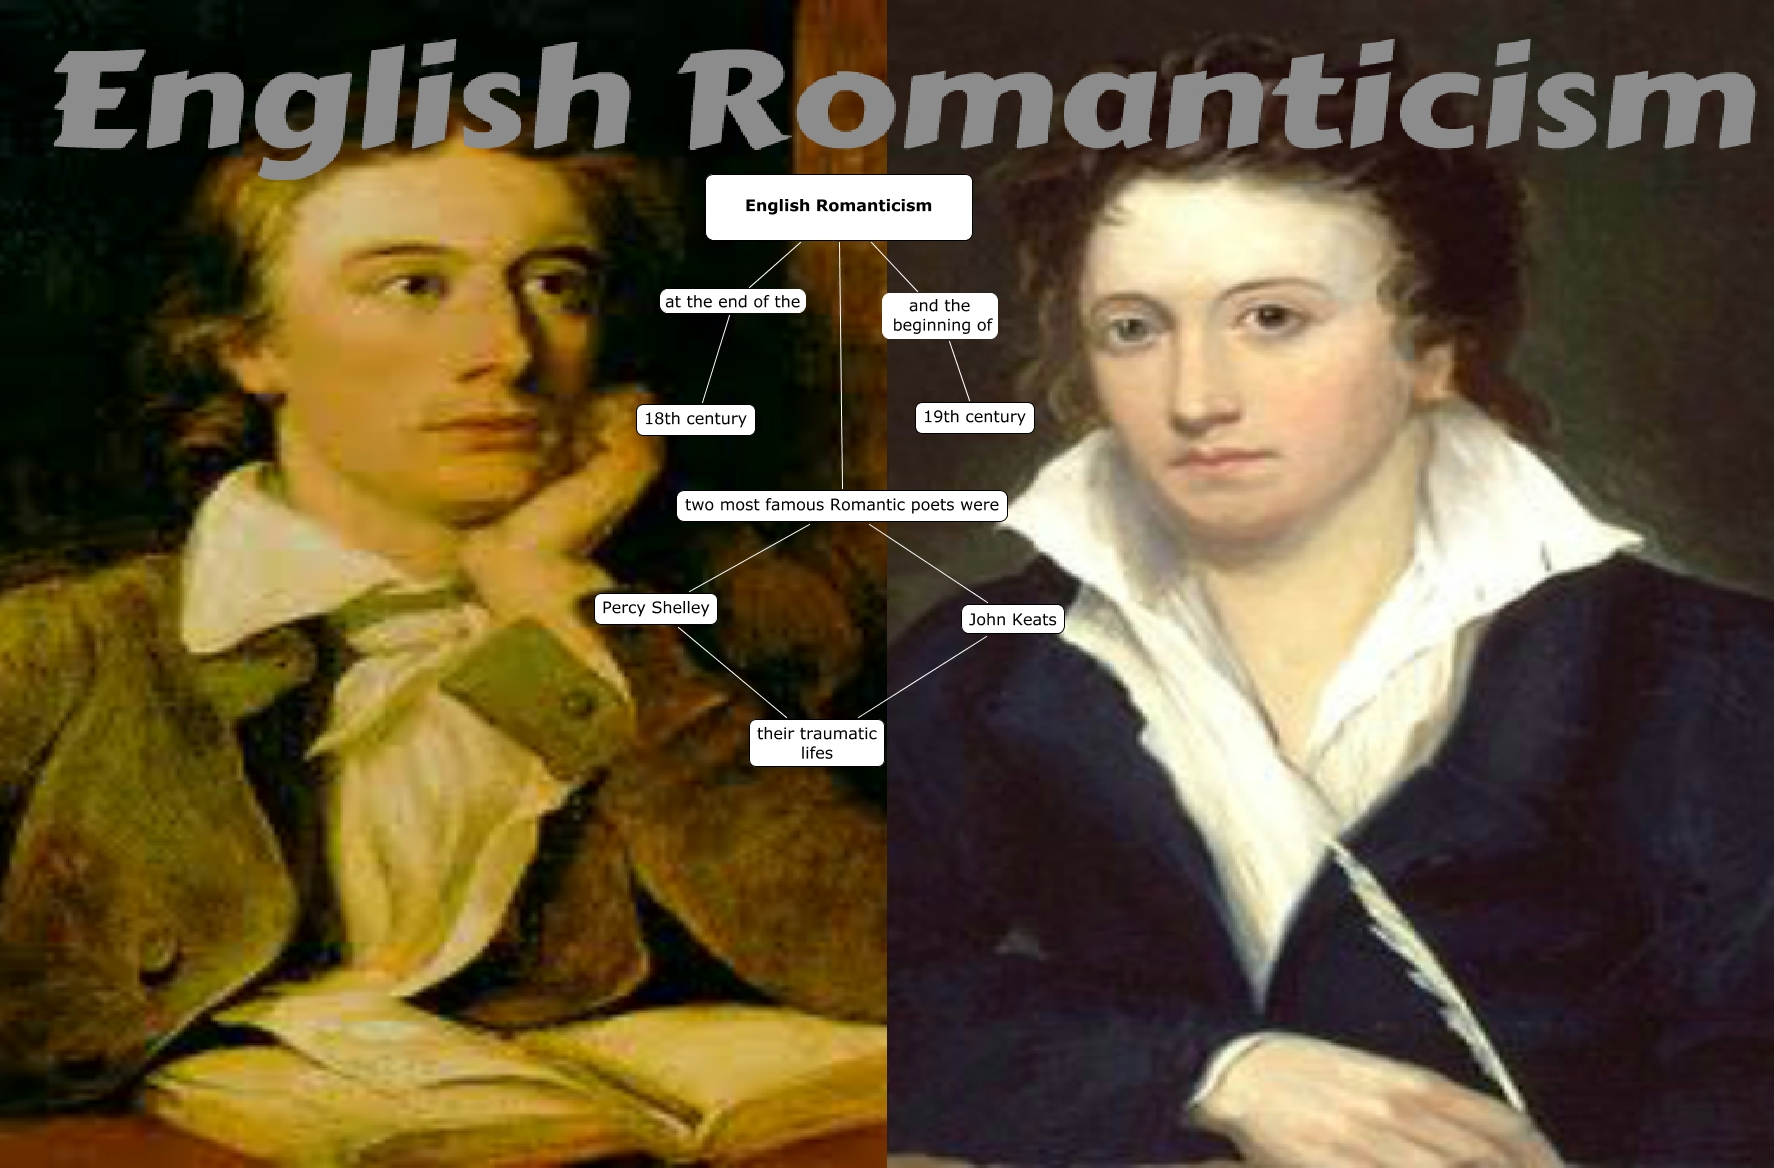 french revolution and english romanticism